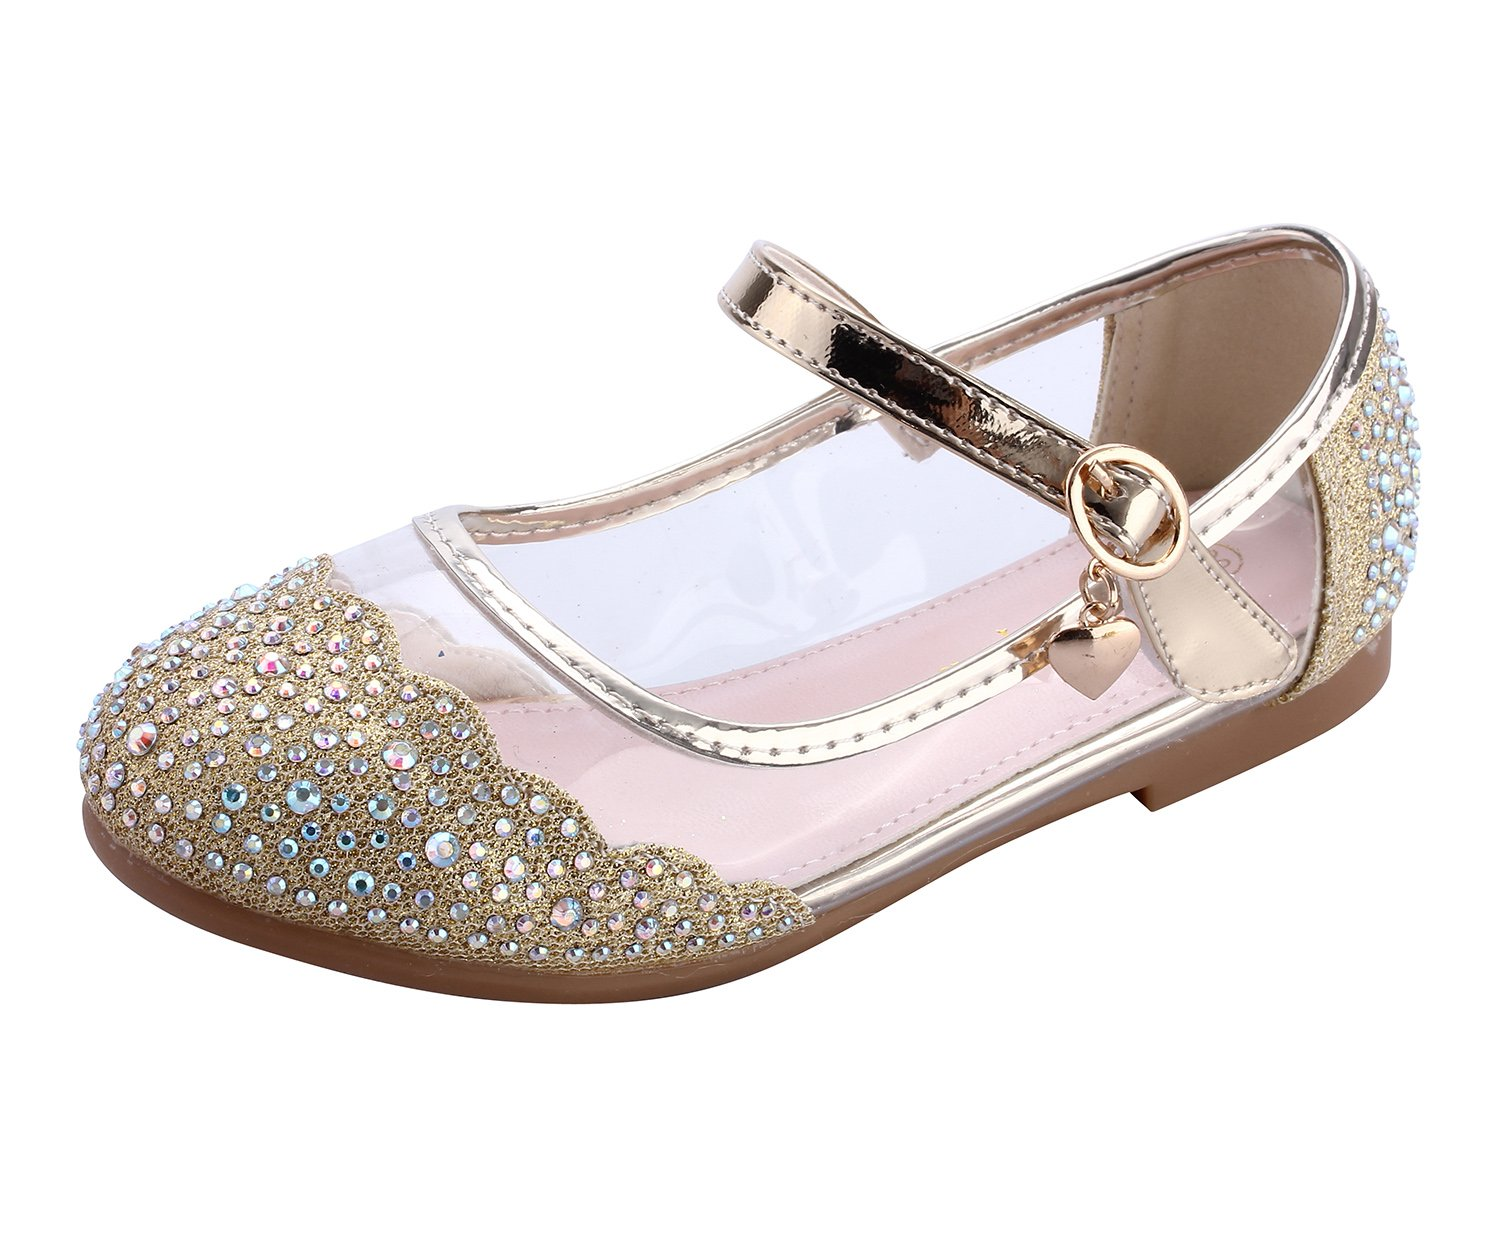 miaoshop Kids Flat Shoes Mary Jane Casual Slip On Ballerina Girls Glass Glitter Shoes (12.5 M Little Kid, Gold)